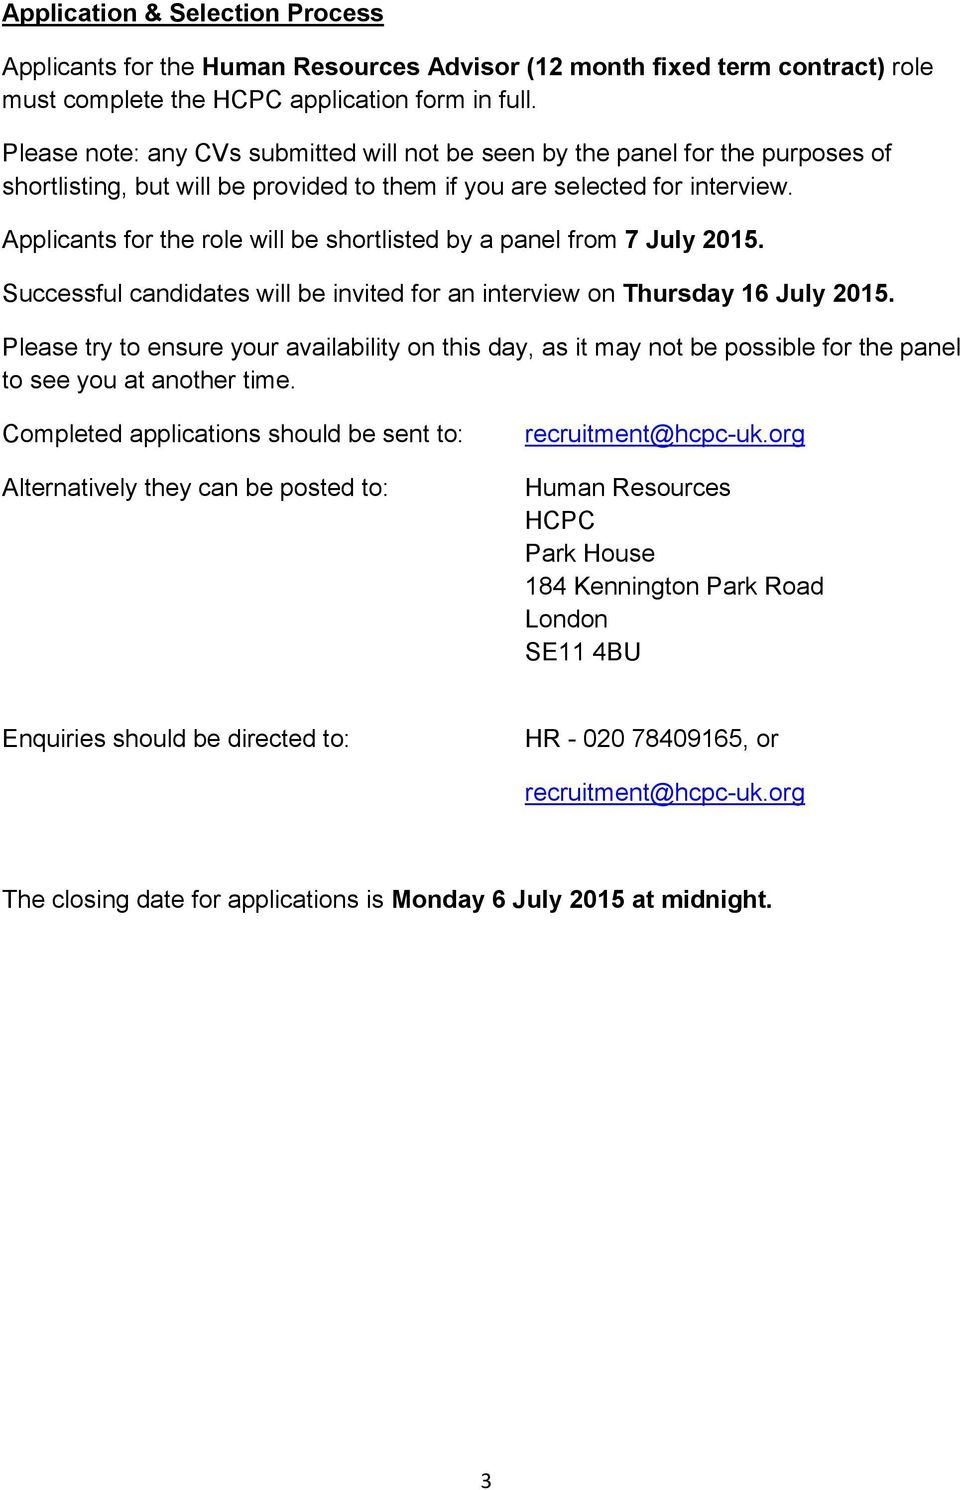 Applicants for the role will be shortlisted by a panel from 7 July 2015. Successful candidates will be invited for an interview on Thursday 16 July 2015.